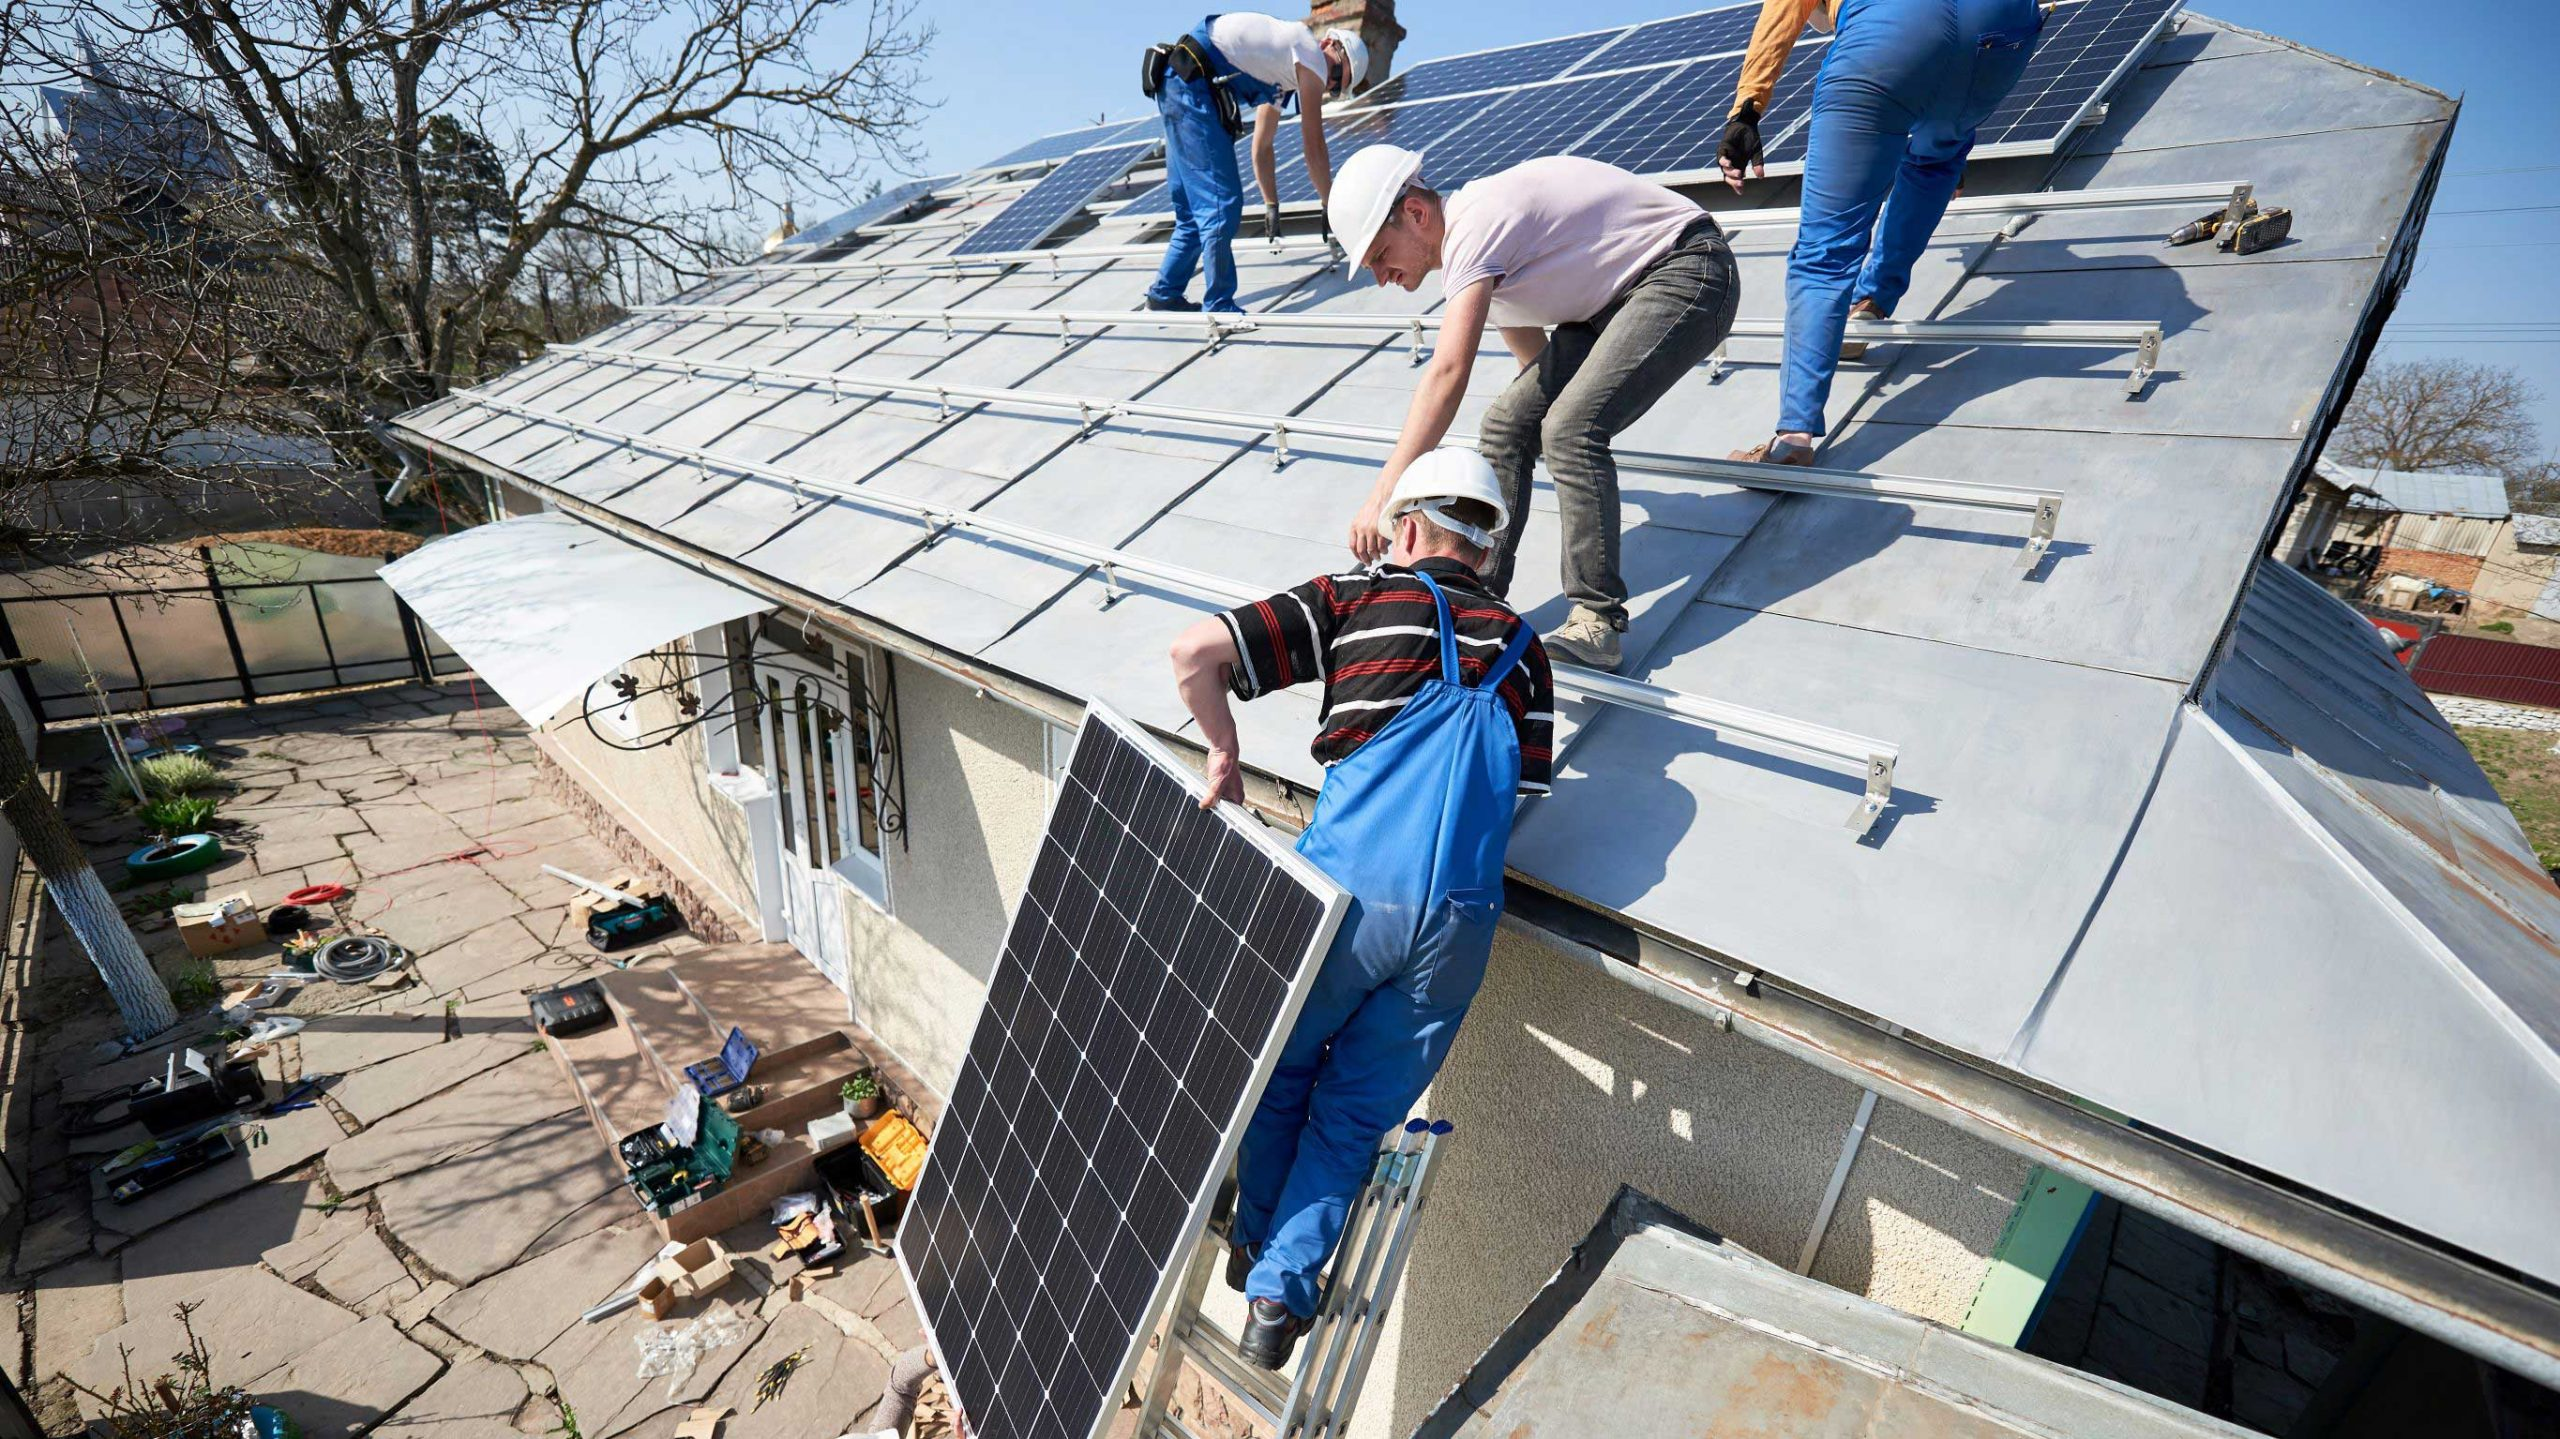 Top 2021 Solar News & Trends Homeowners Should Know About